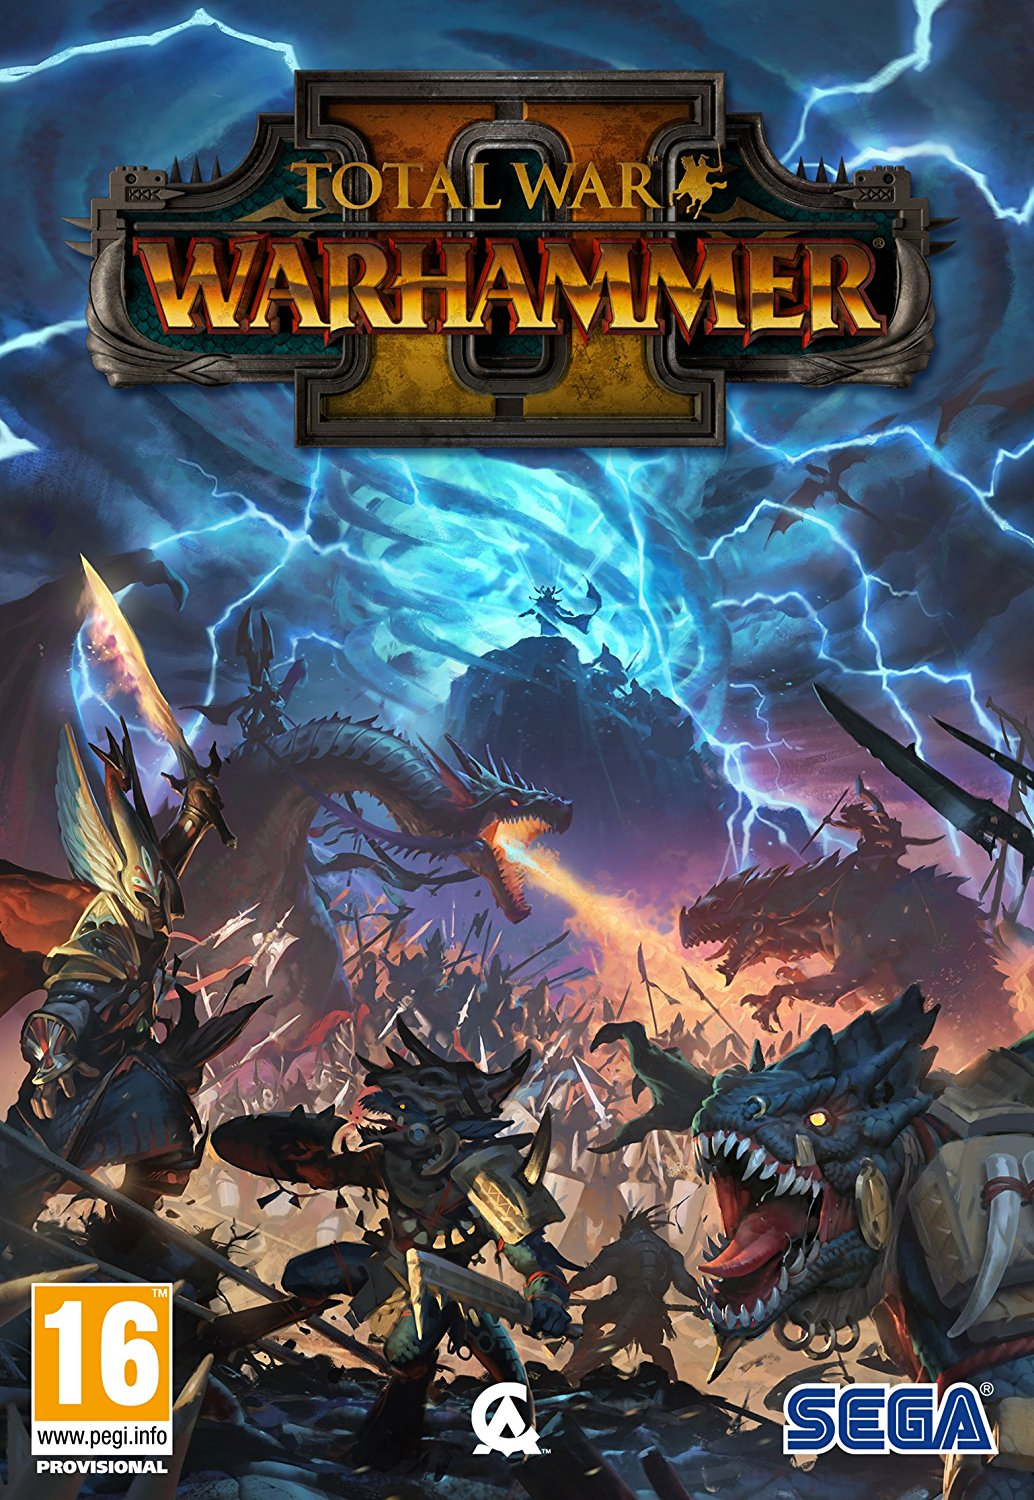 https://img5.downloadha.com/hosein/Game/September%202017/28/Total-War-WARHAMMER-II-pc-cover-large.jpg